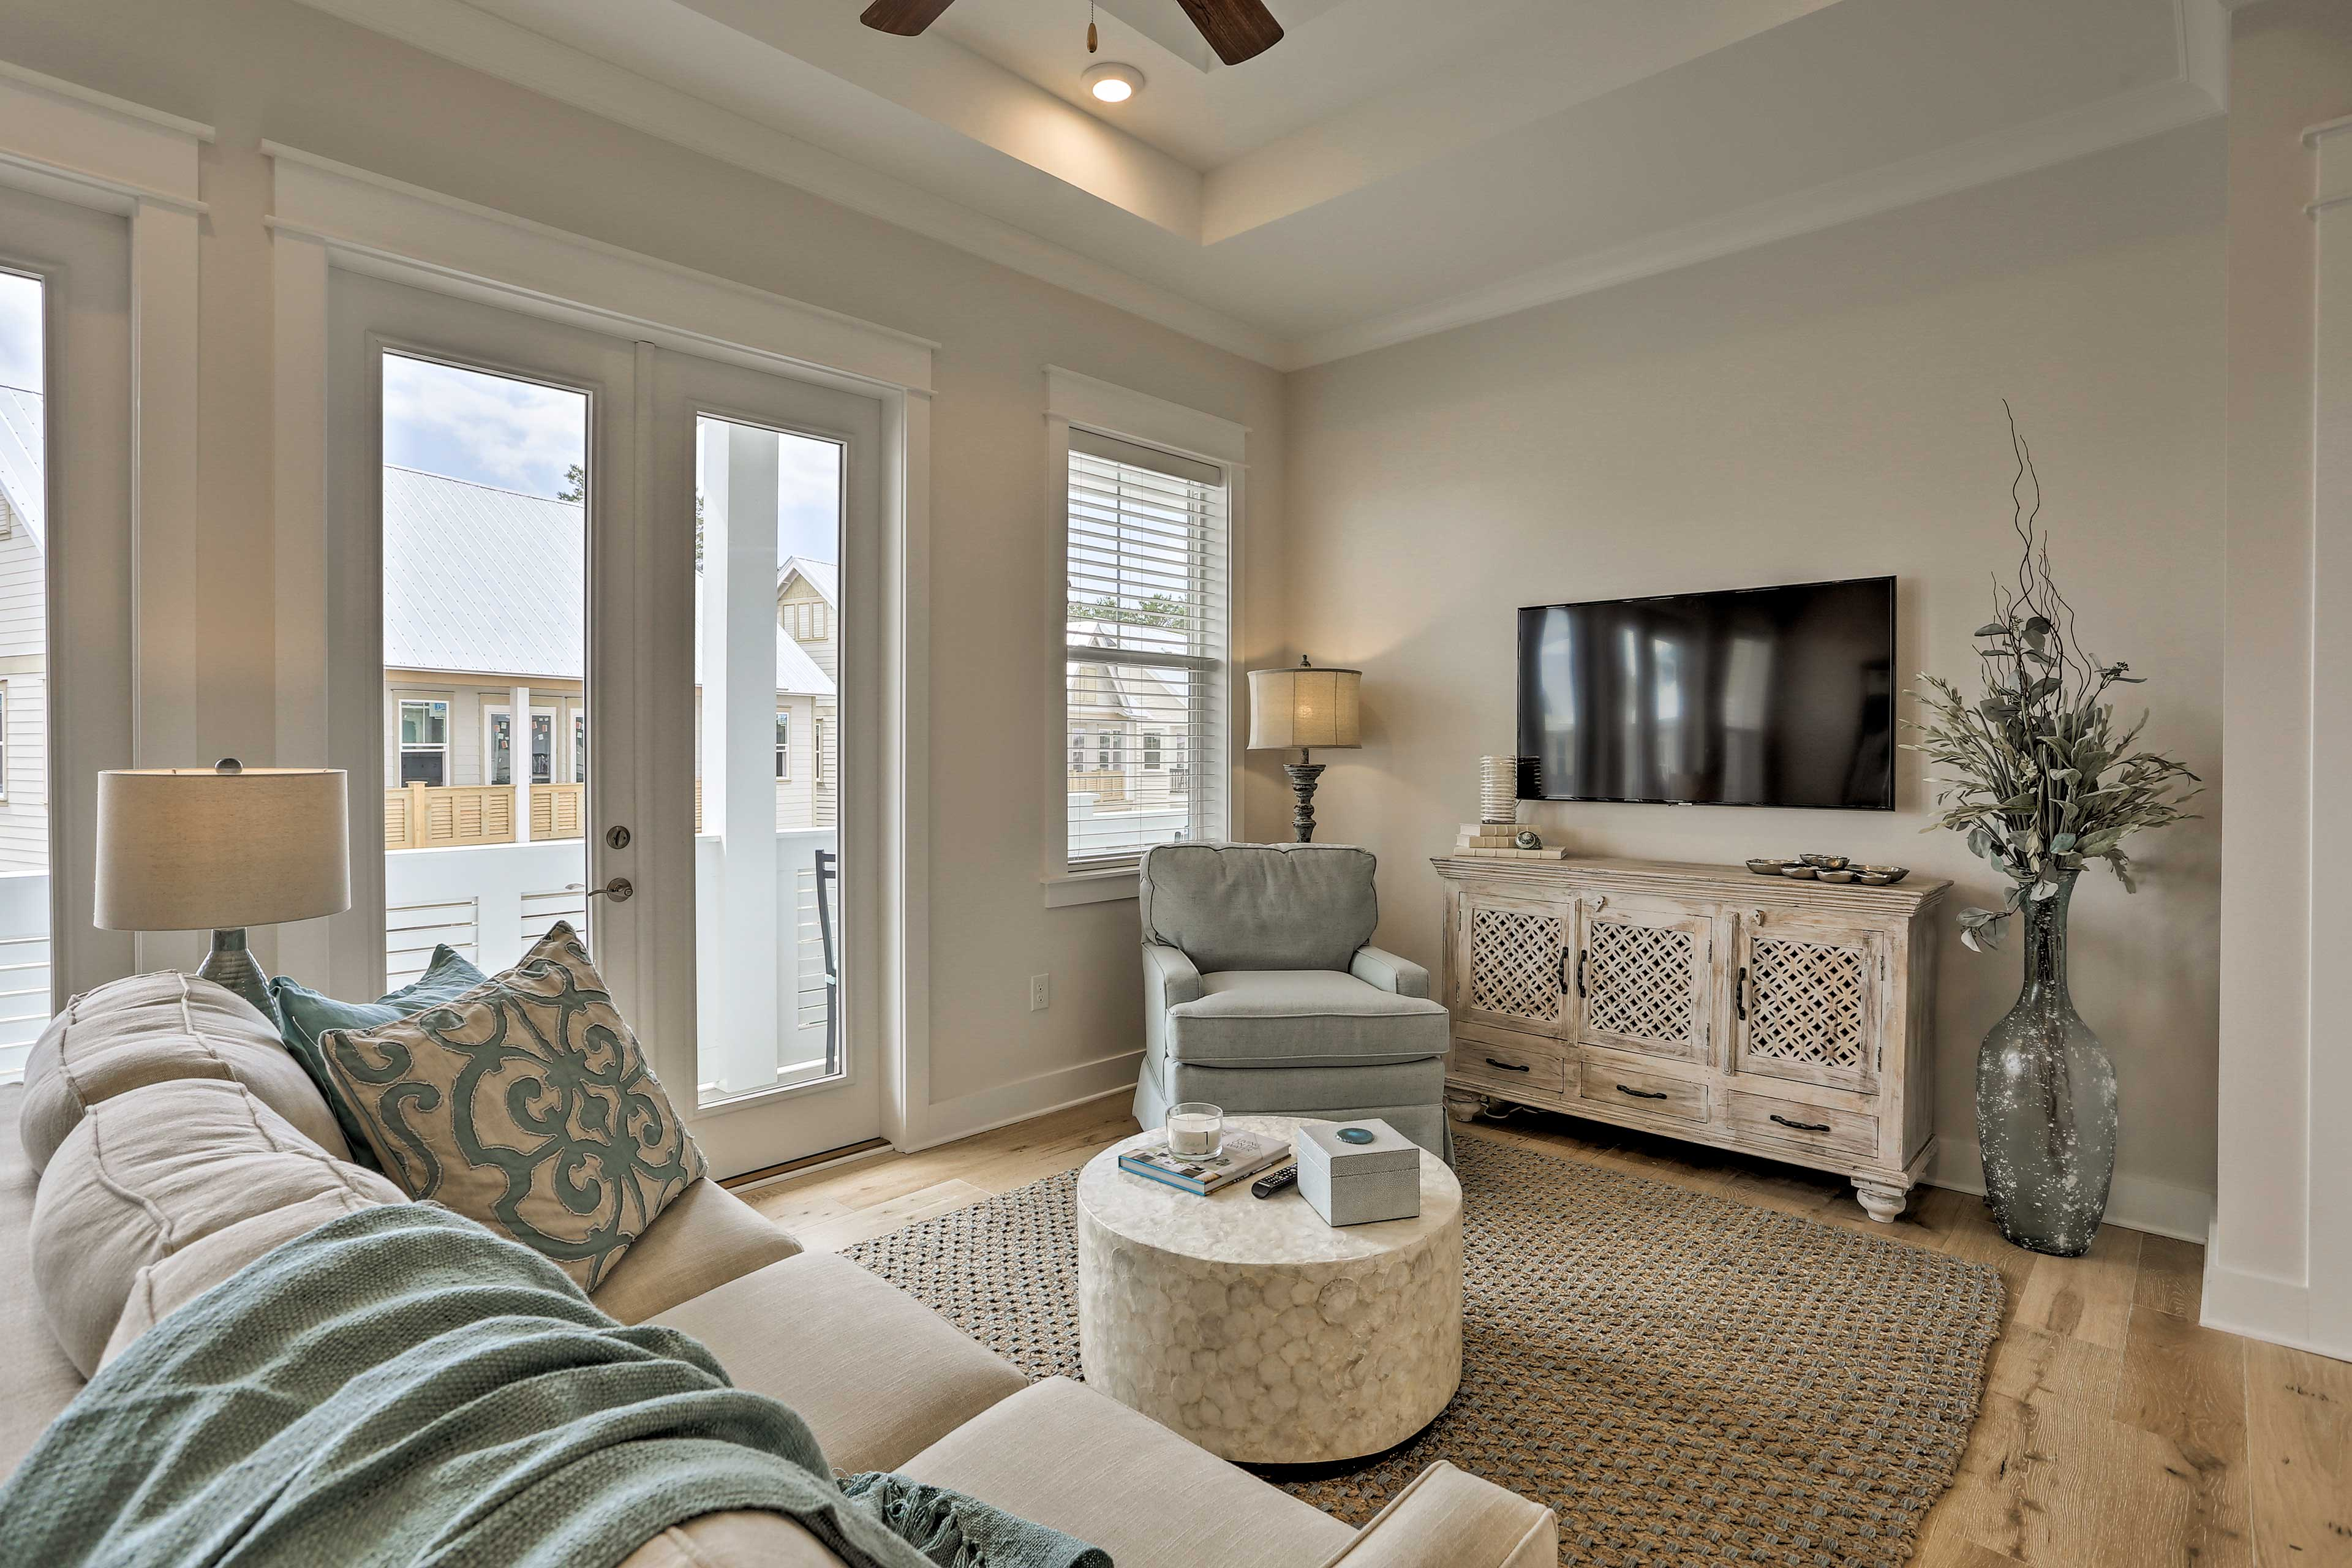 Kick back on the sofa or armchair in the living room featuring a flat-screen TV.